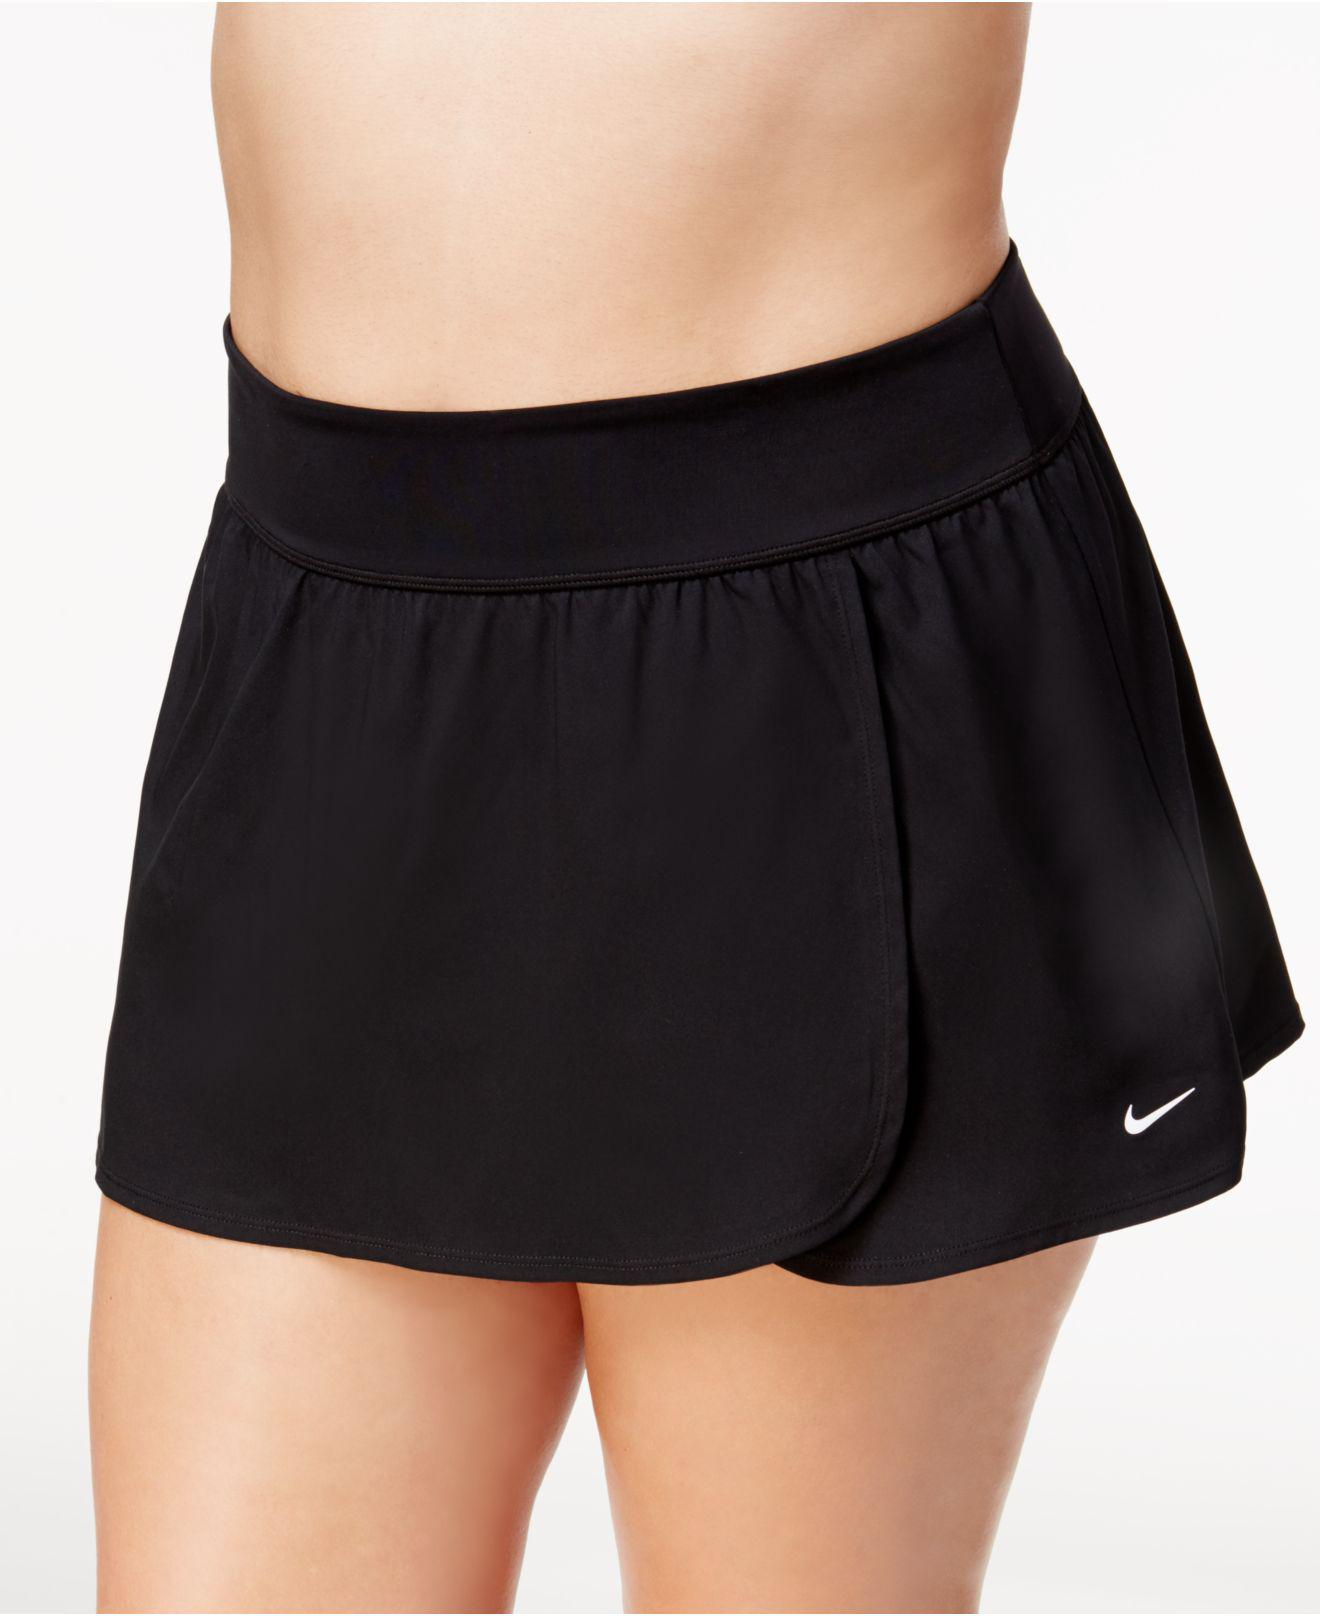 62b04afe80e Lyst - Nike Plus Size Solid Core Boardskirt in Black